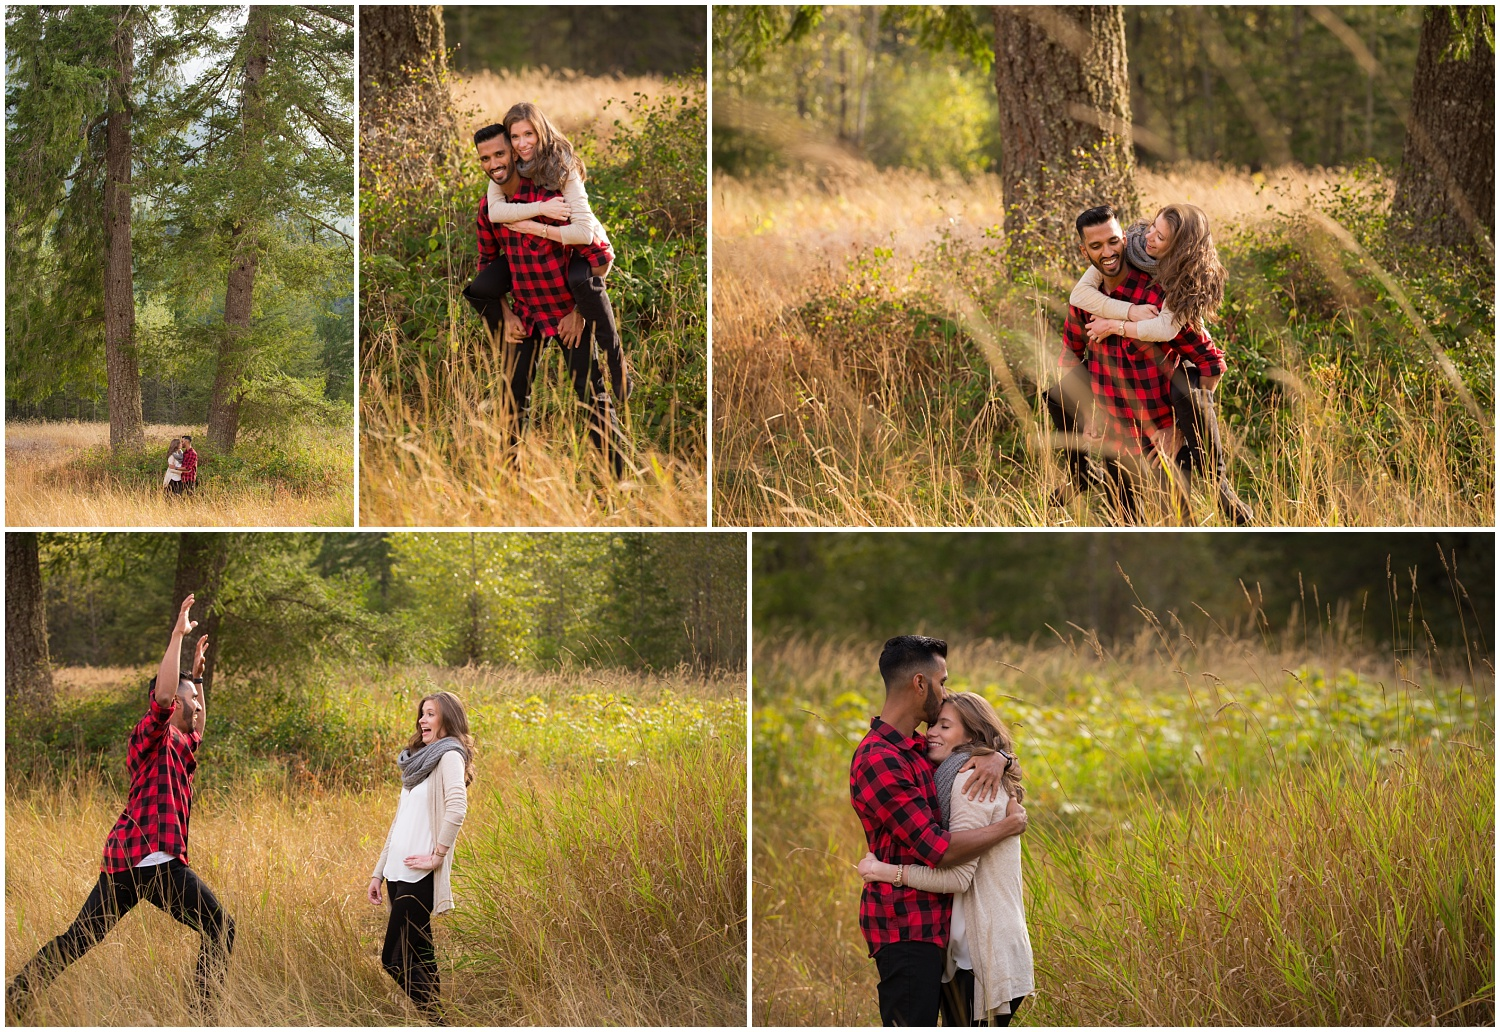 Amazind Day Photography - Chilliwack River Engagement Session - Chilliwack Engagement Photographer - Langley Engagement Photographer (7).jpg